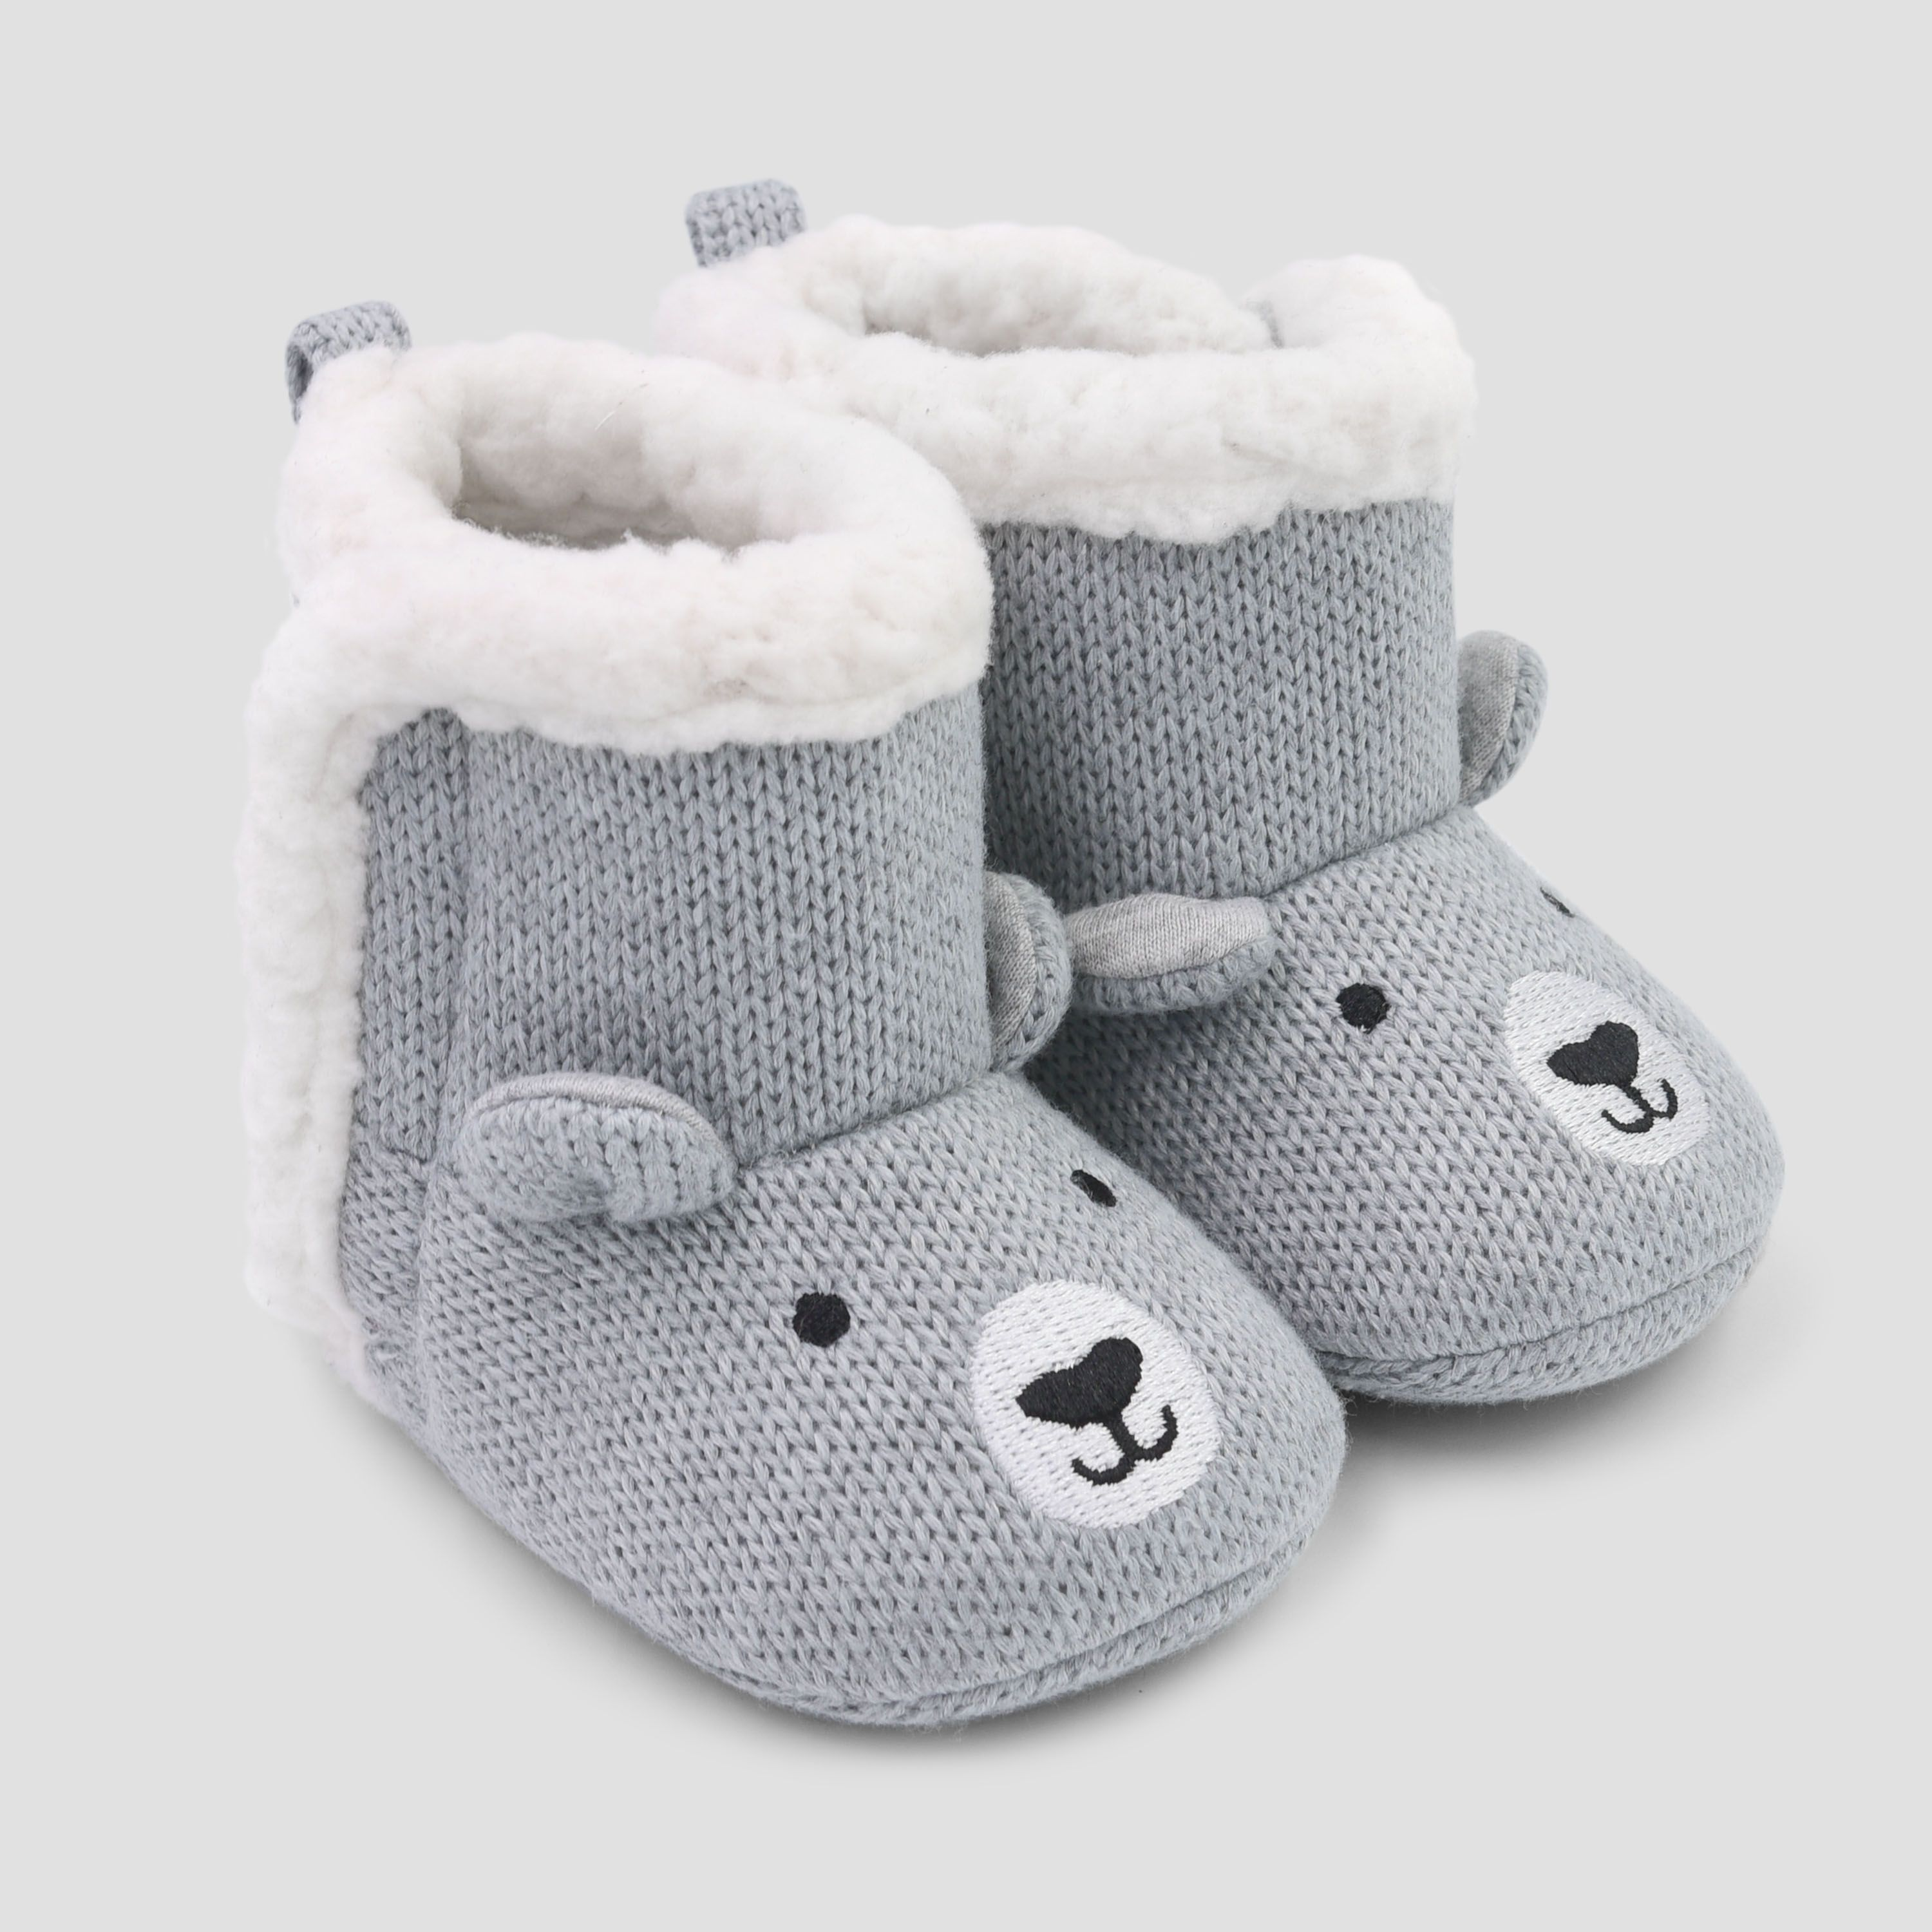 Baby boy shoes, Cute baby boy outfits